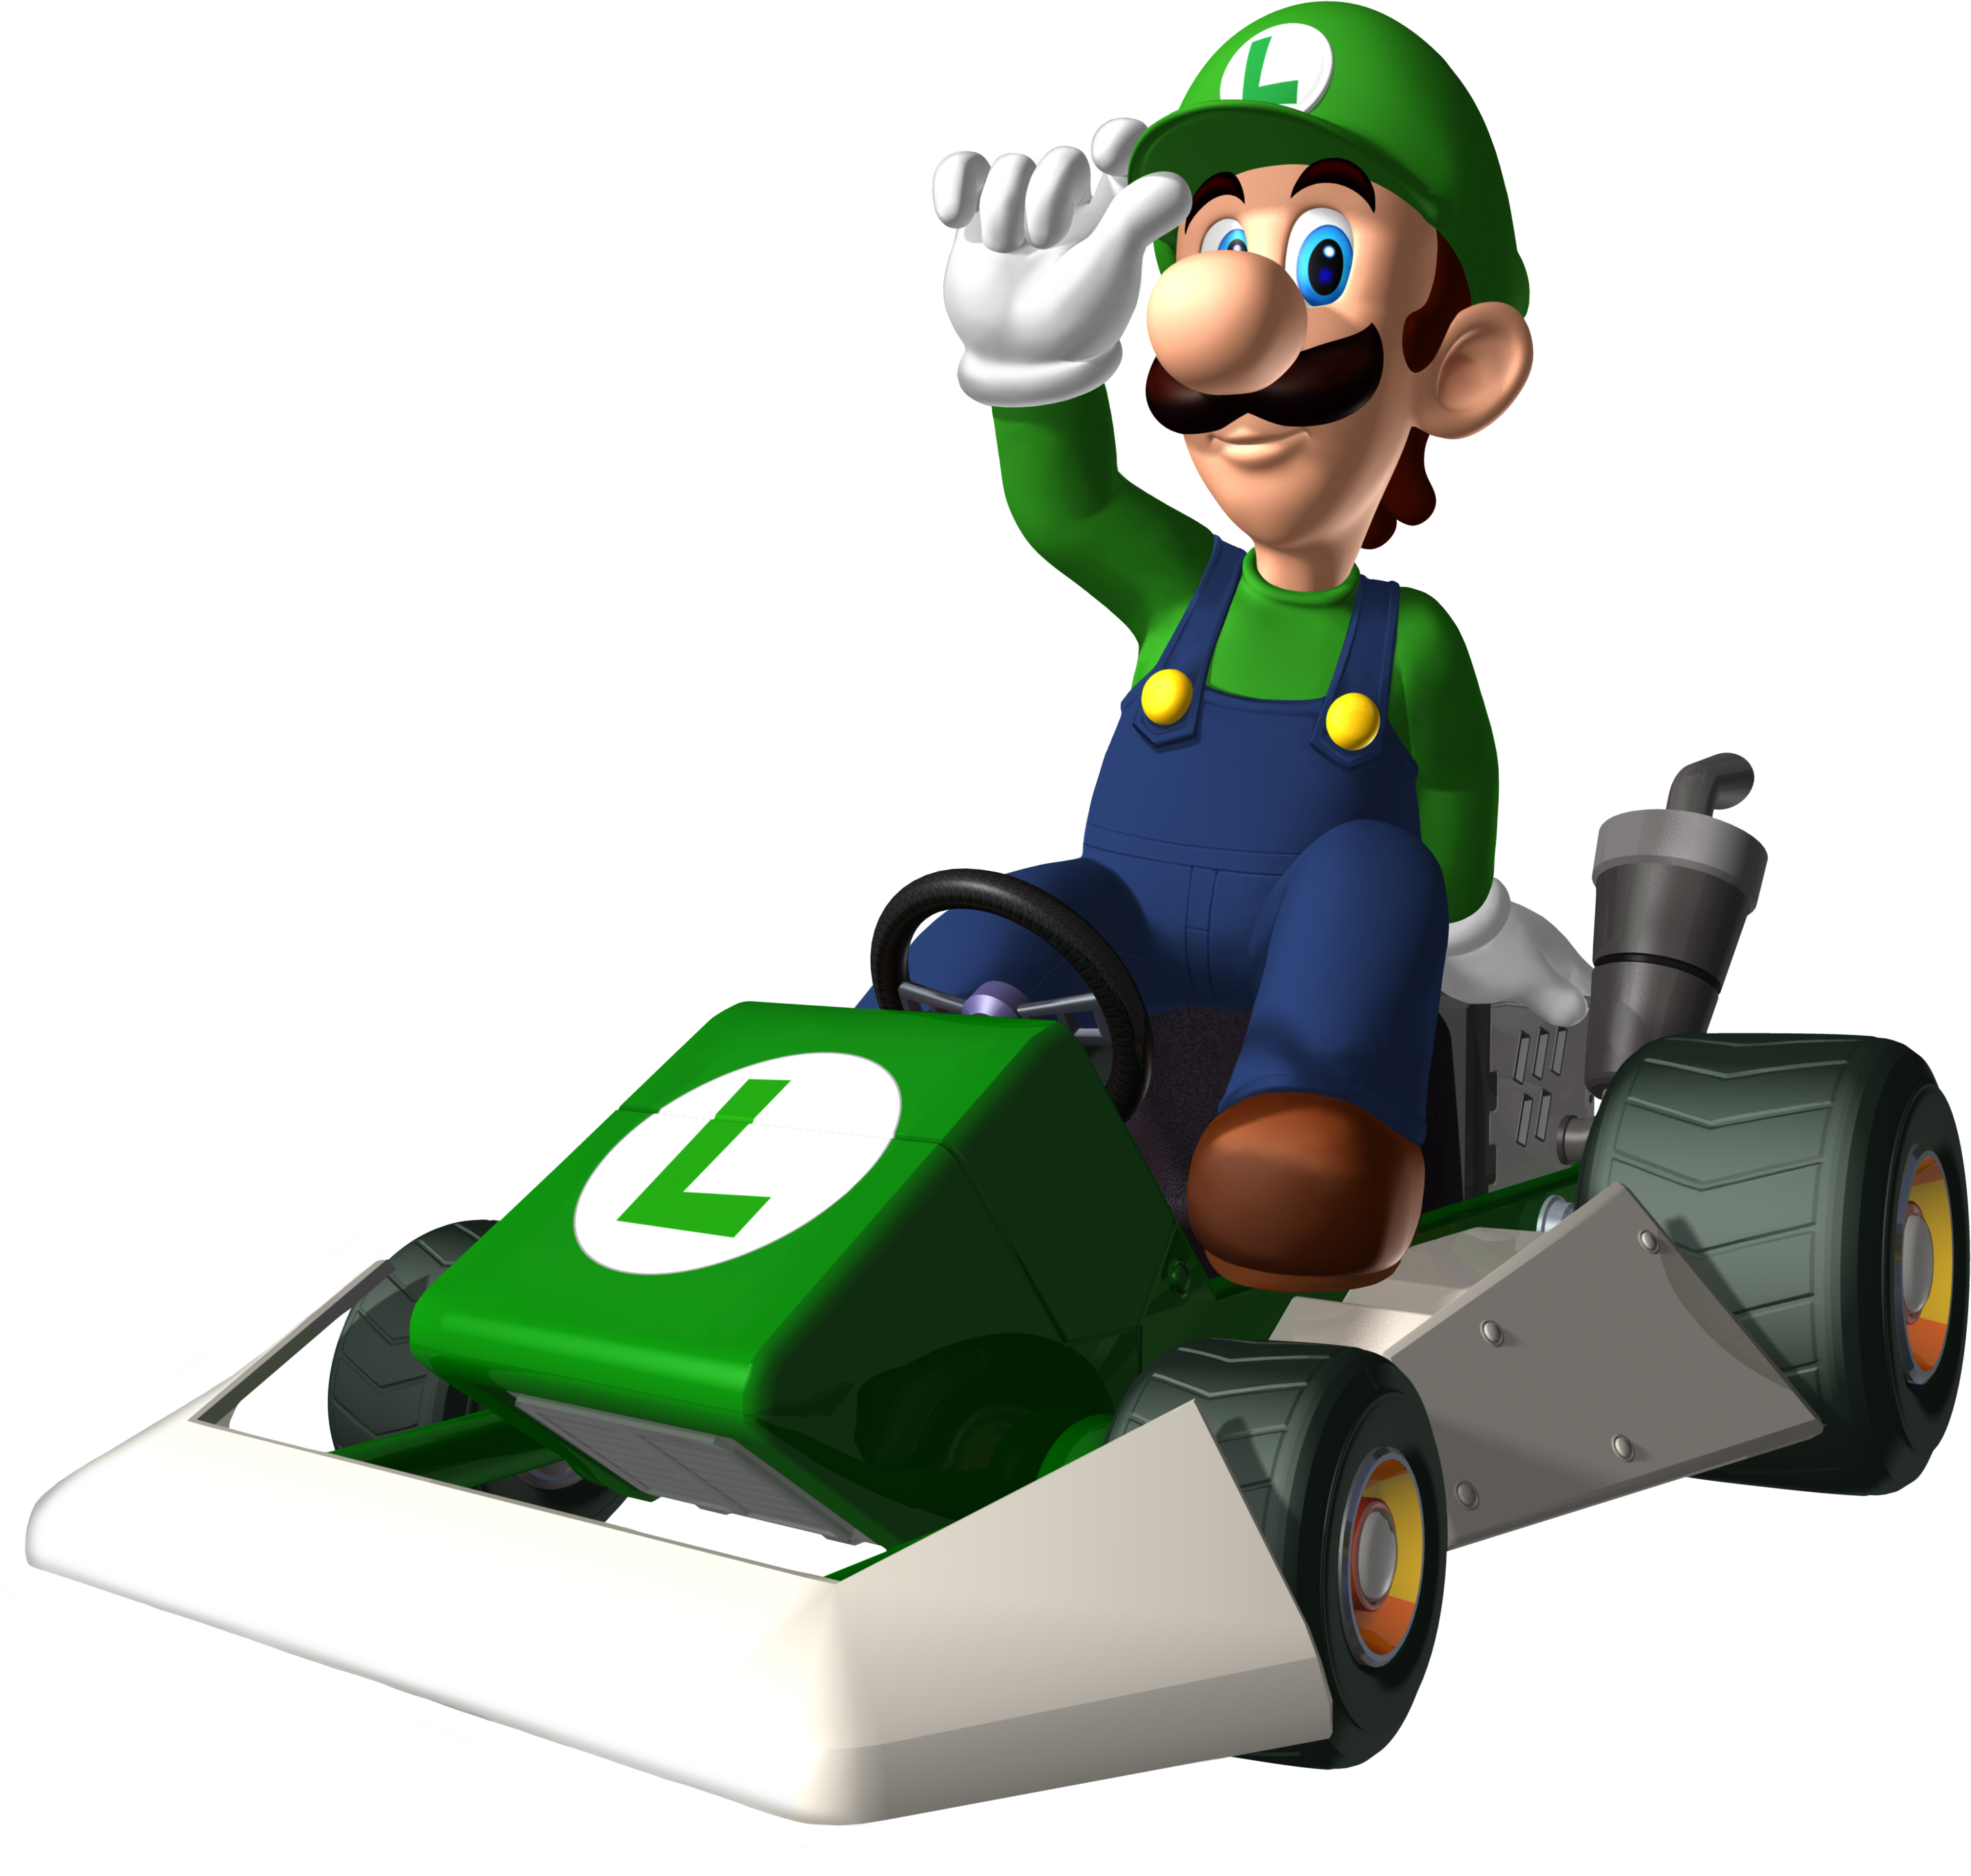 https://www.mariowiki.com/images/b/be/Luigi_in_Standard_LG_MKDS_artwork.png